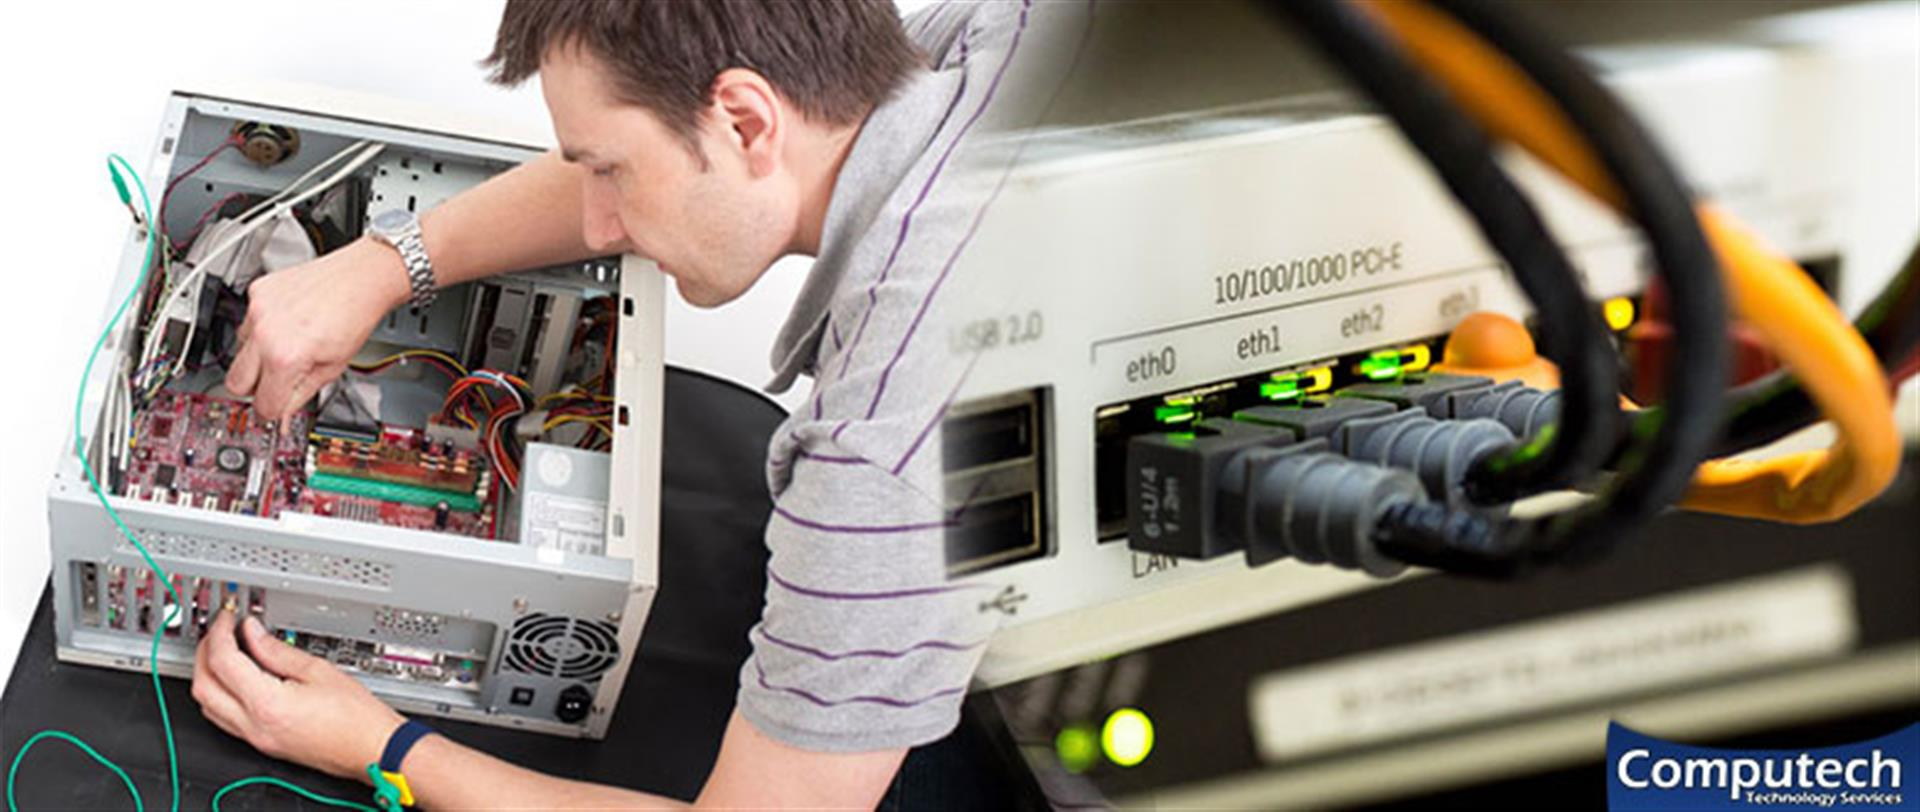 Cleveland Tennessee On-Site Computer & Printer Repairs, Networking, Voice & Data Cabling Services